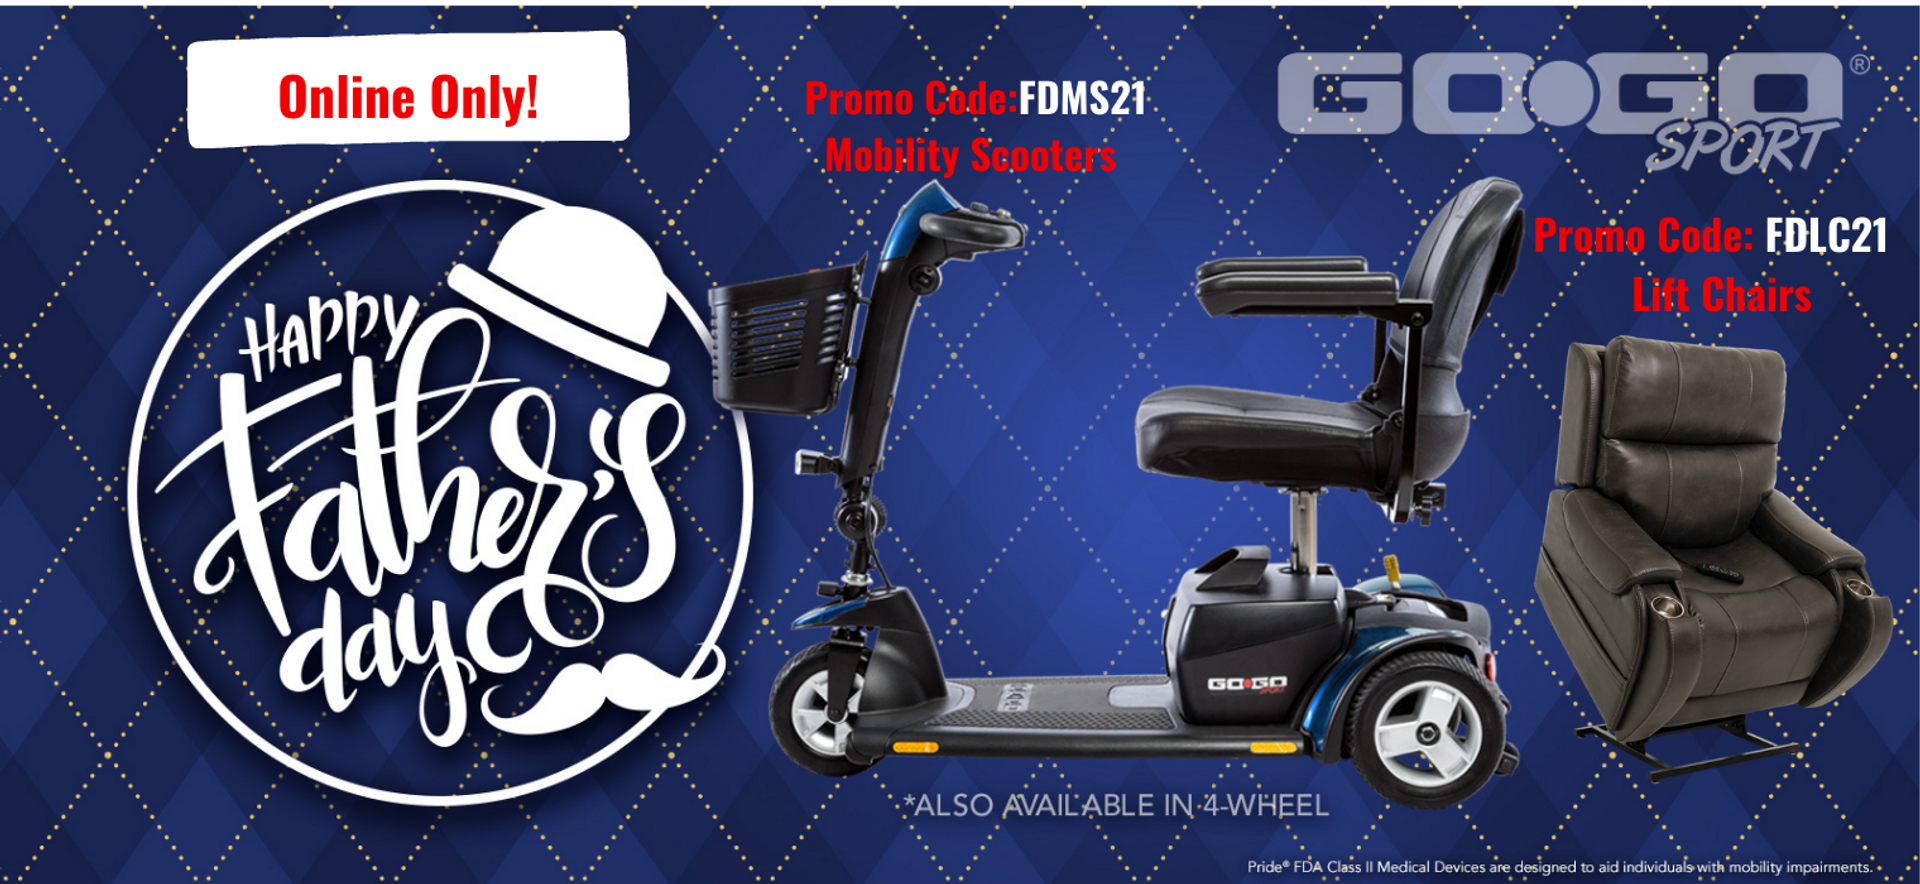 Fathers day scooter deals